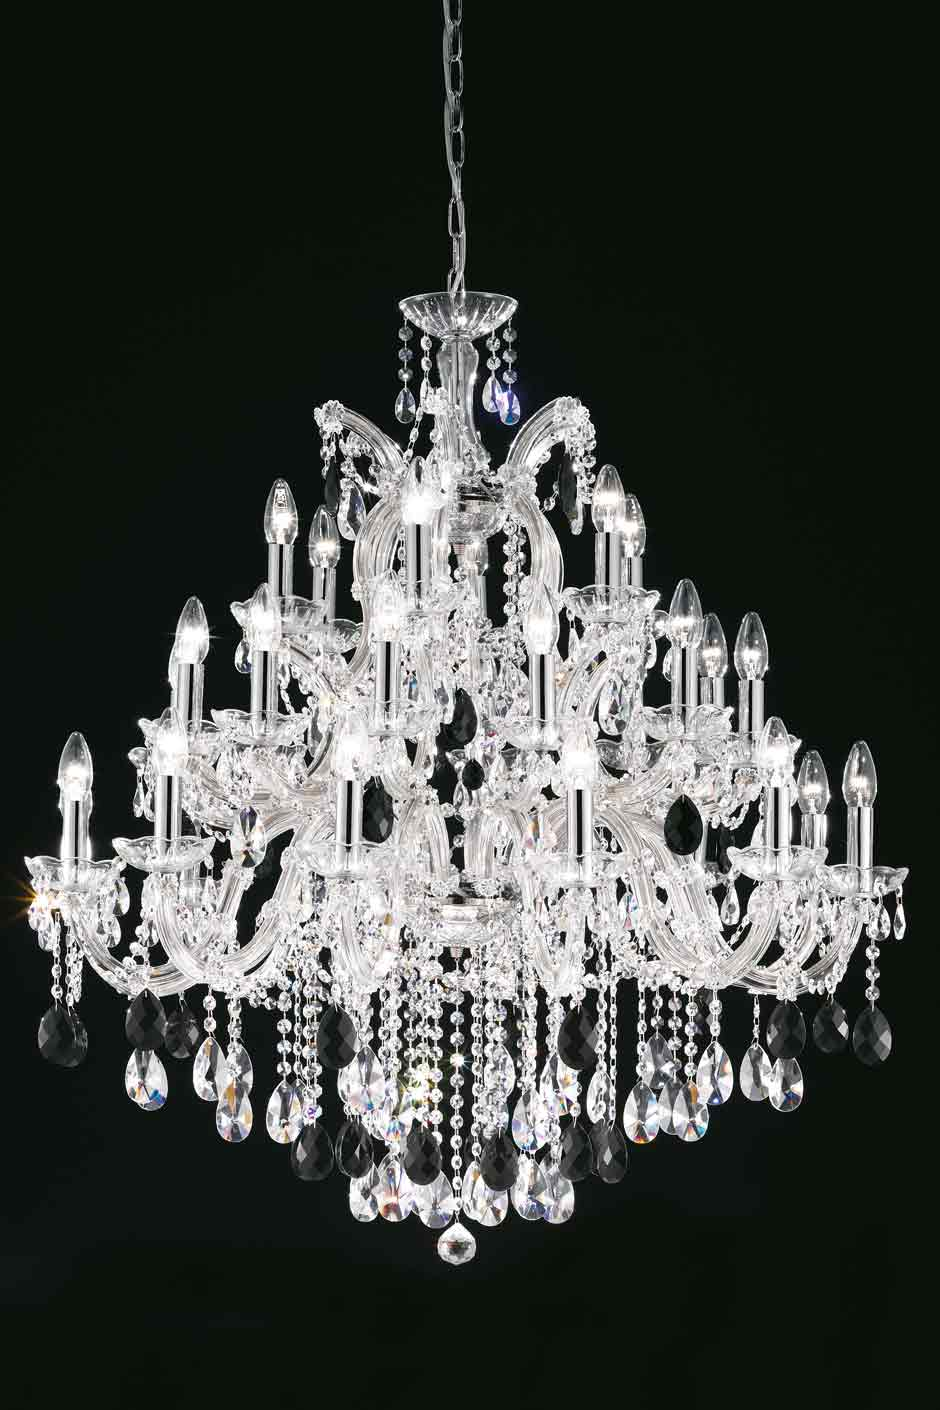 Clear Bohemian crystal chandelier in chrome-plated metal